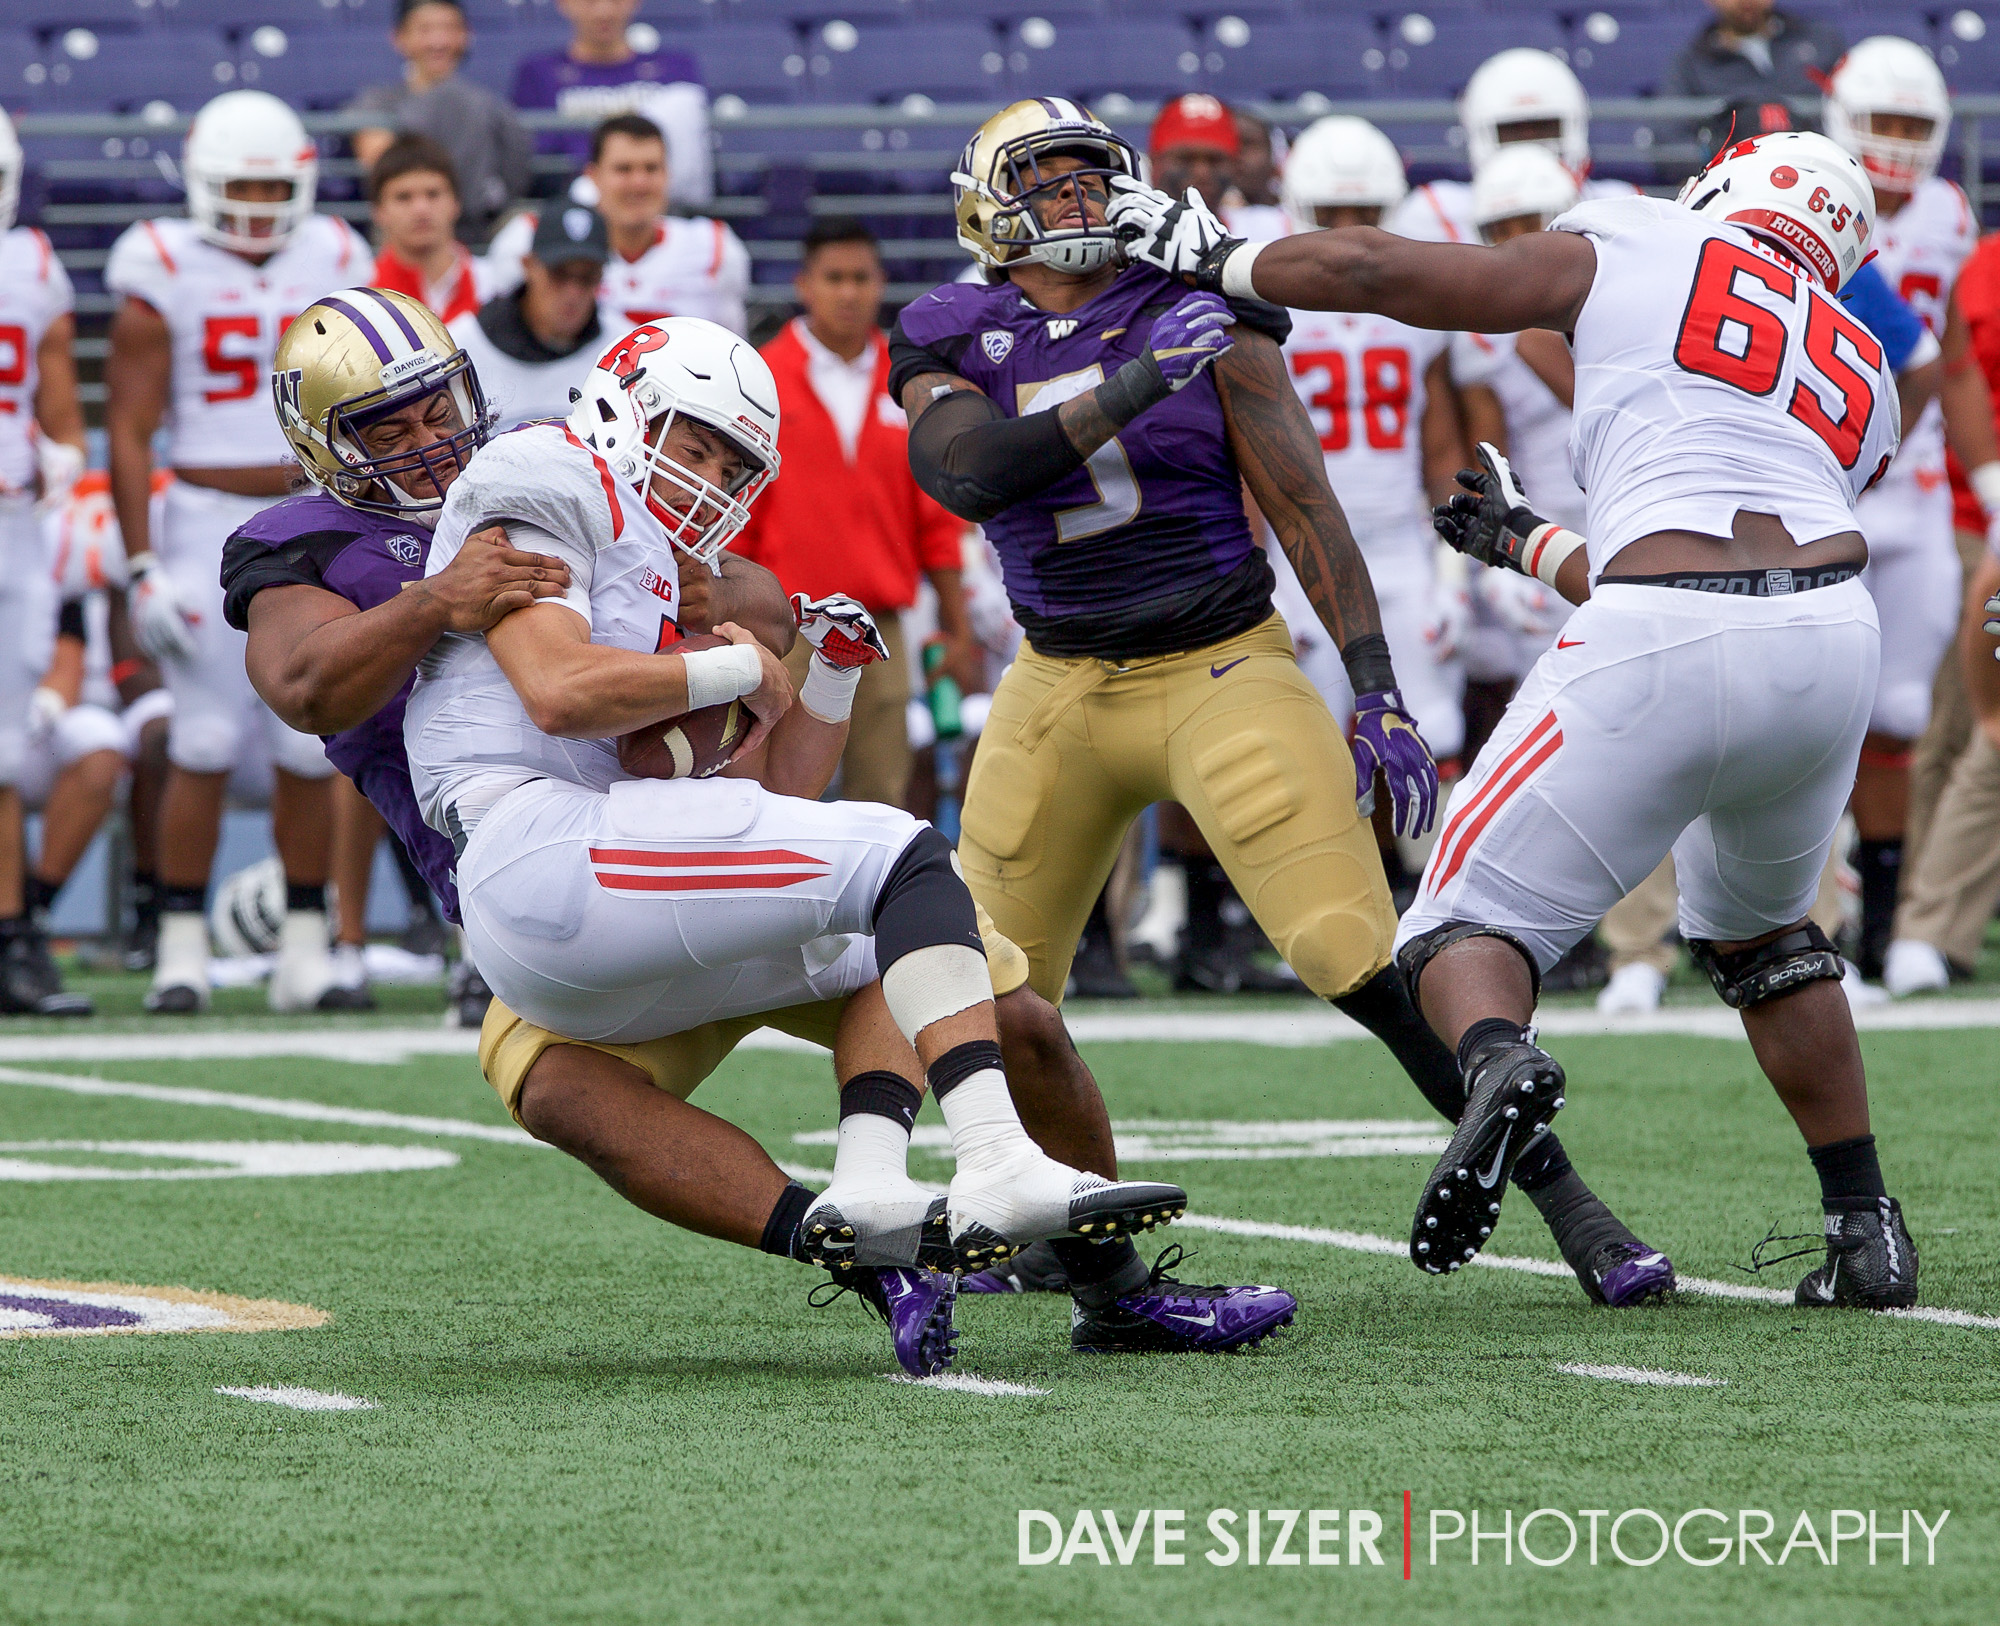 The Dawgs D gets to Laviano again for a sack.